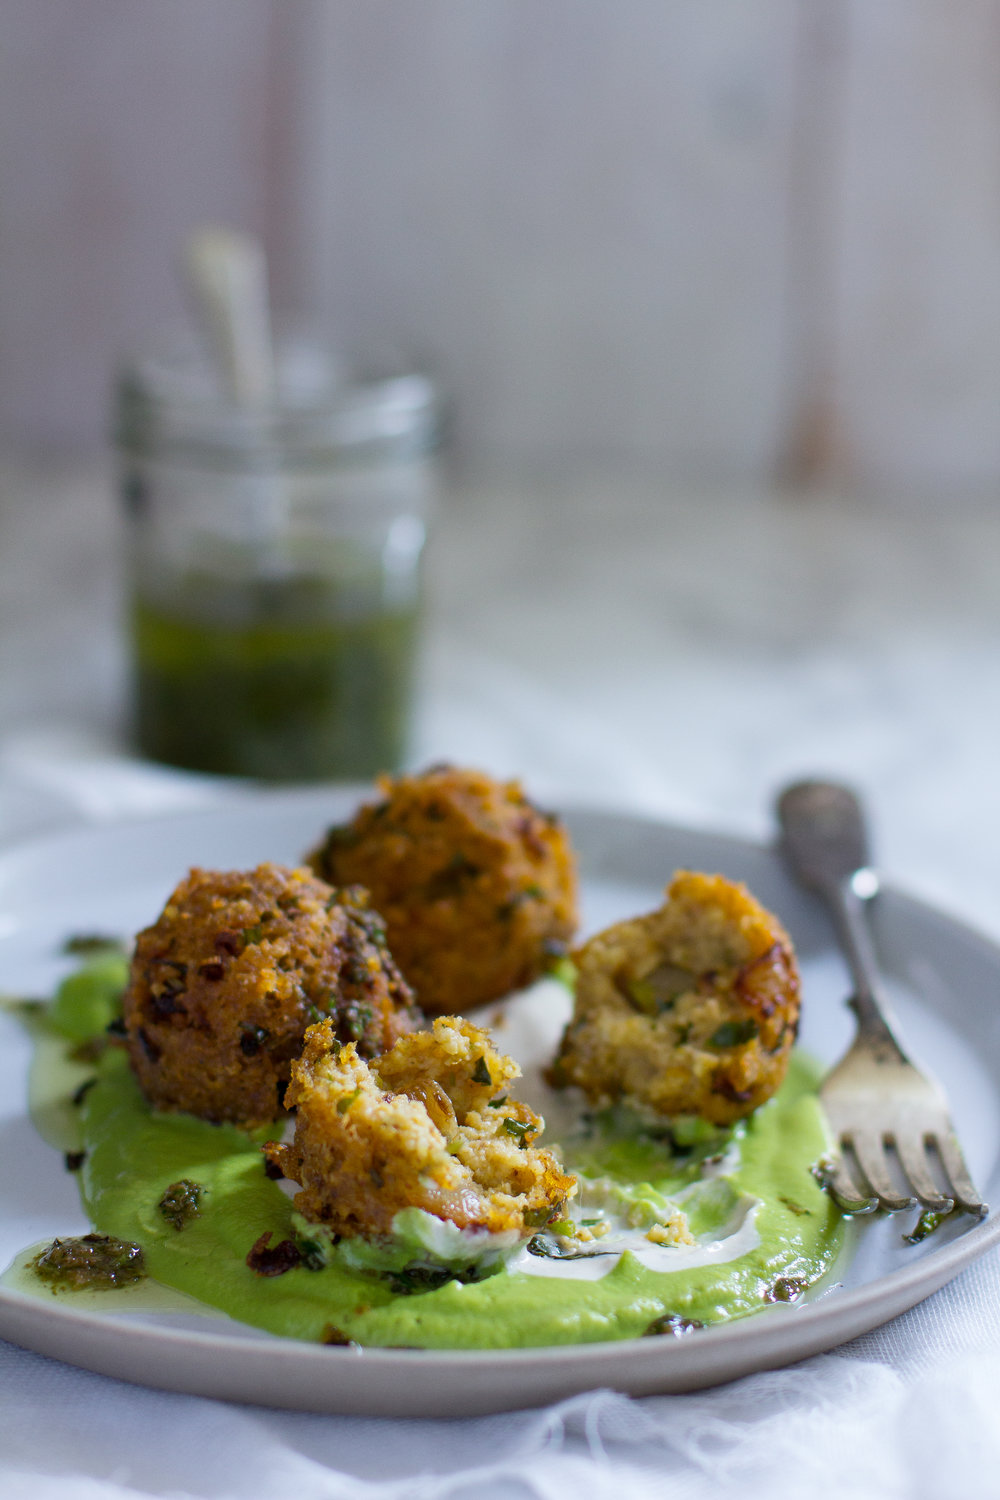 Crispy, preserved lemon and mint millet polpette in a silky pea puree. This will satisfy your comfort food needs while keeping the flavours fresh and light.